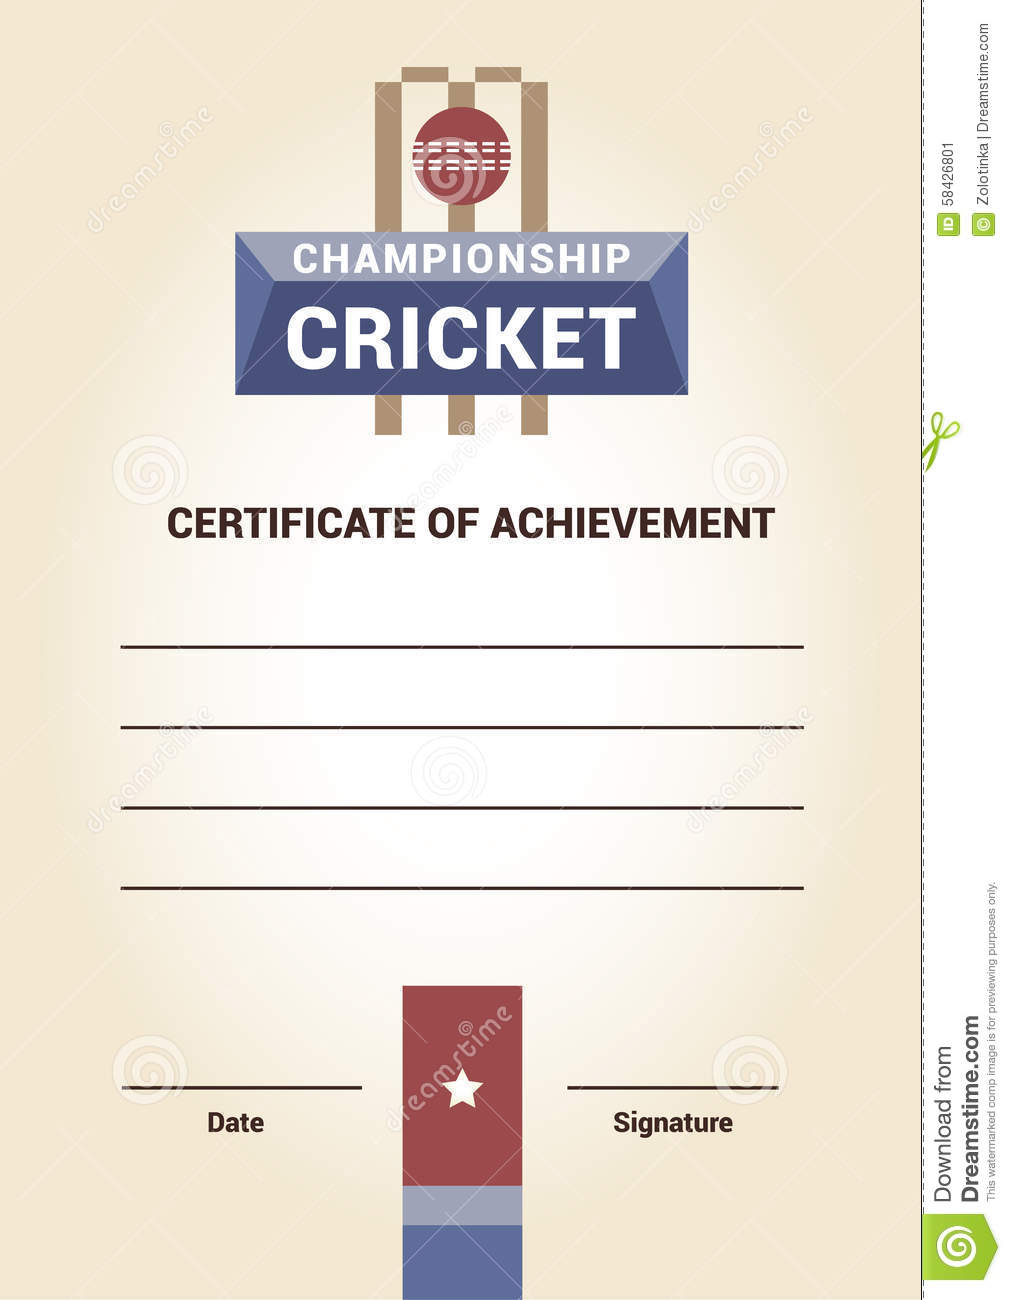 Cricket certificate templates 28 images 22 well designed cricket certificate templates vector template certificate diploma cricket stock vector alramifo Choice Image